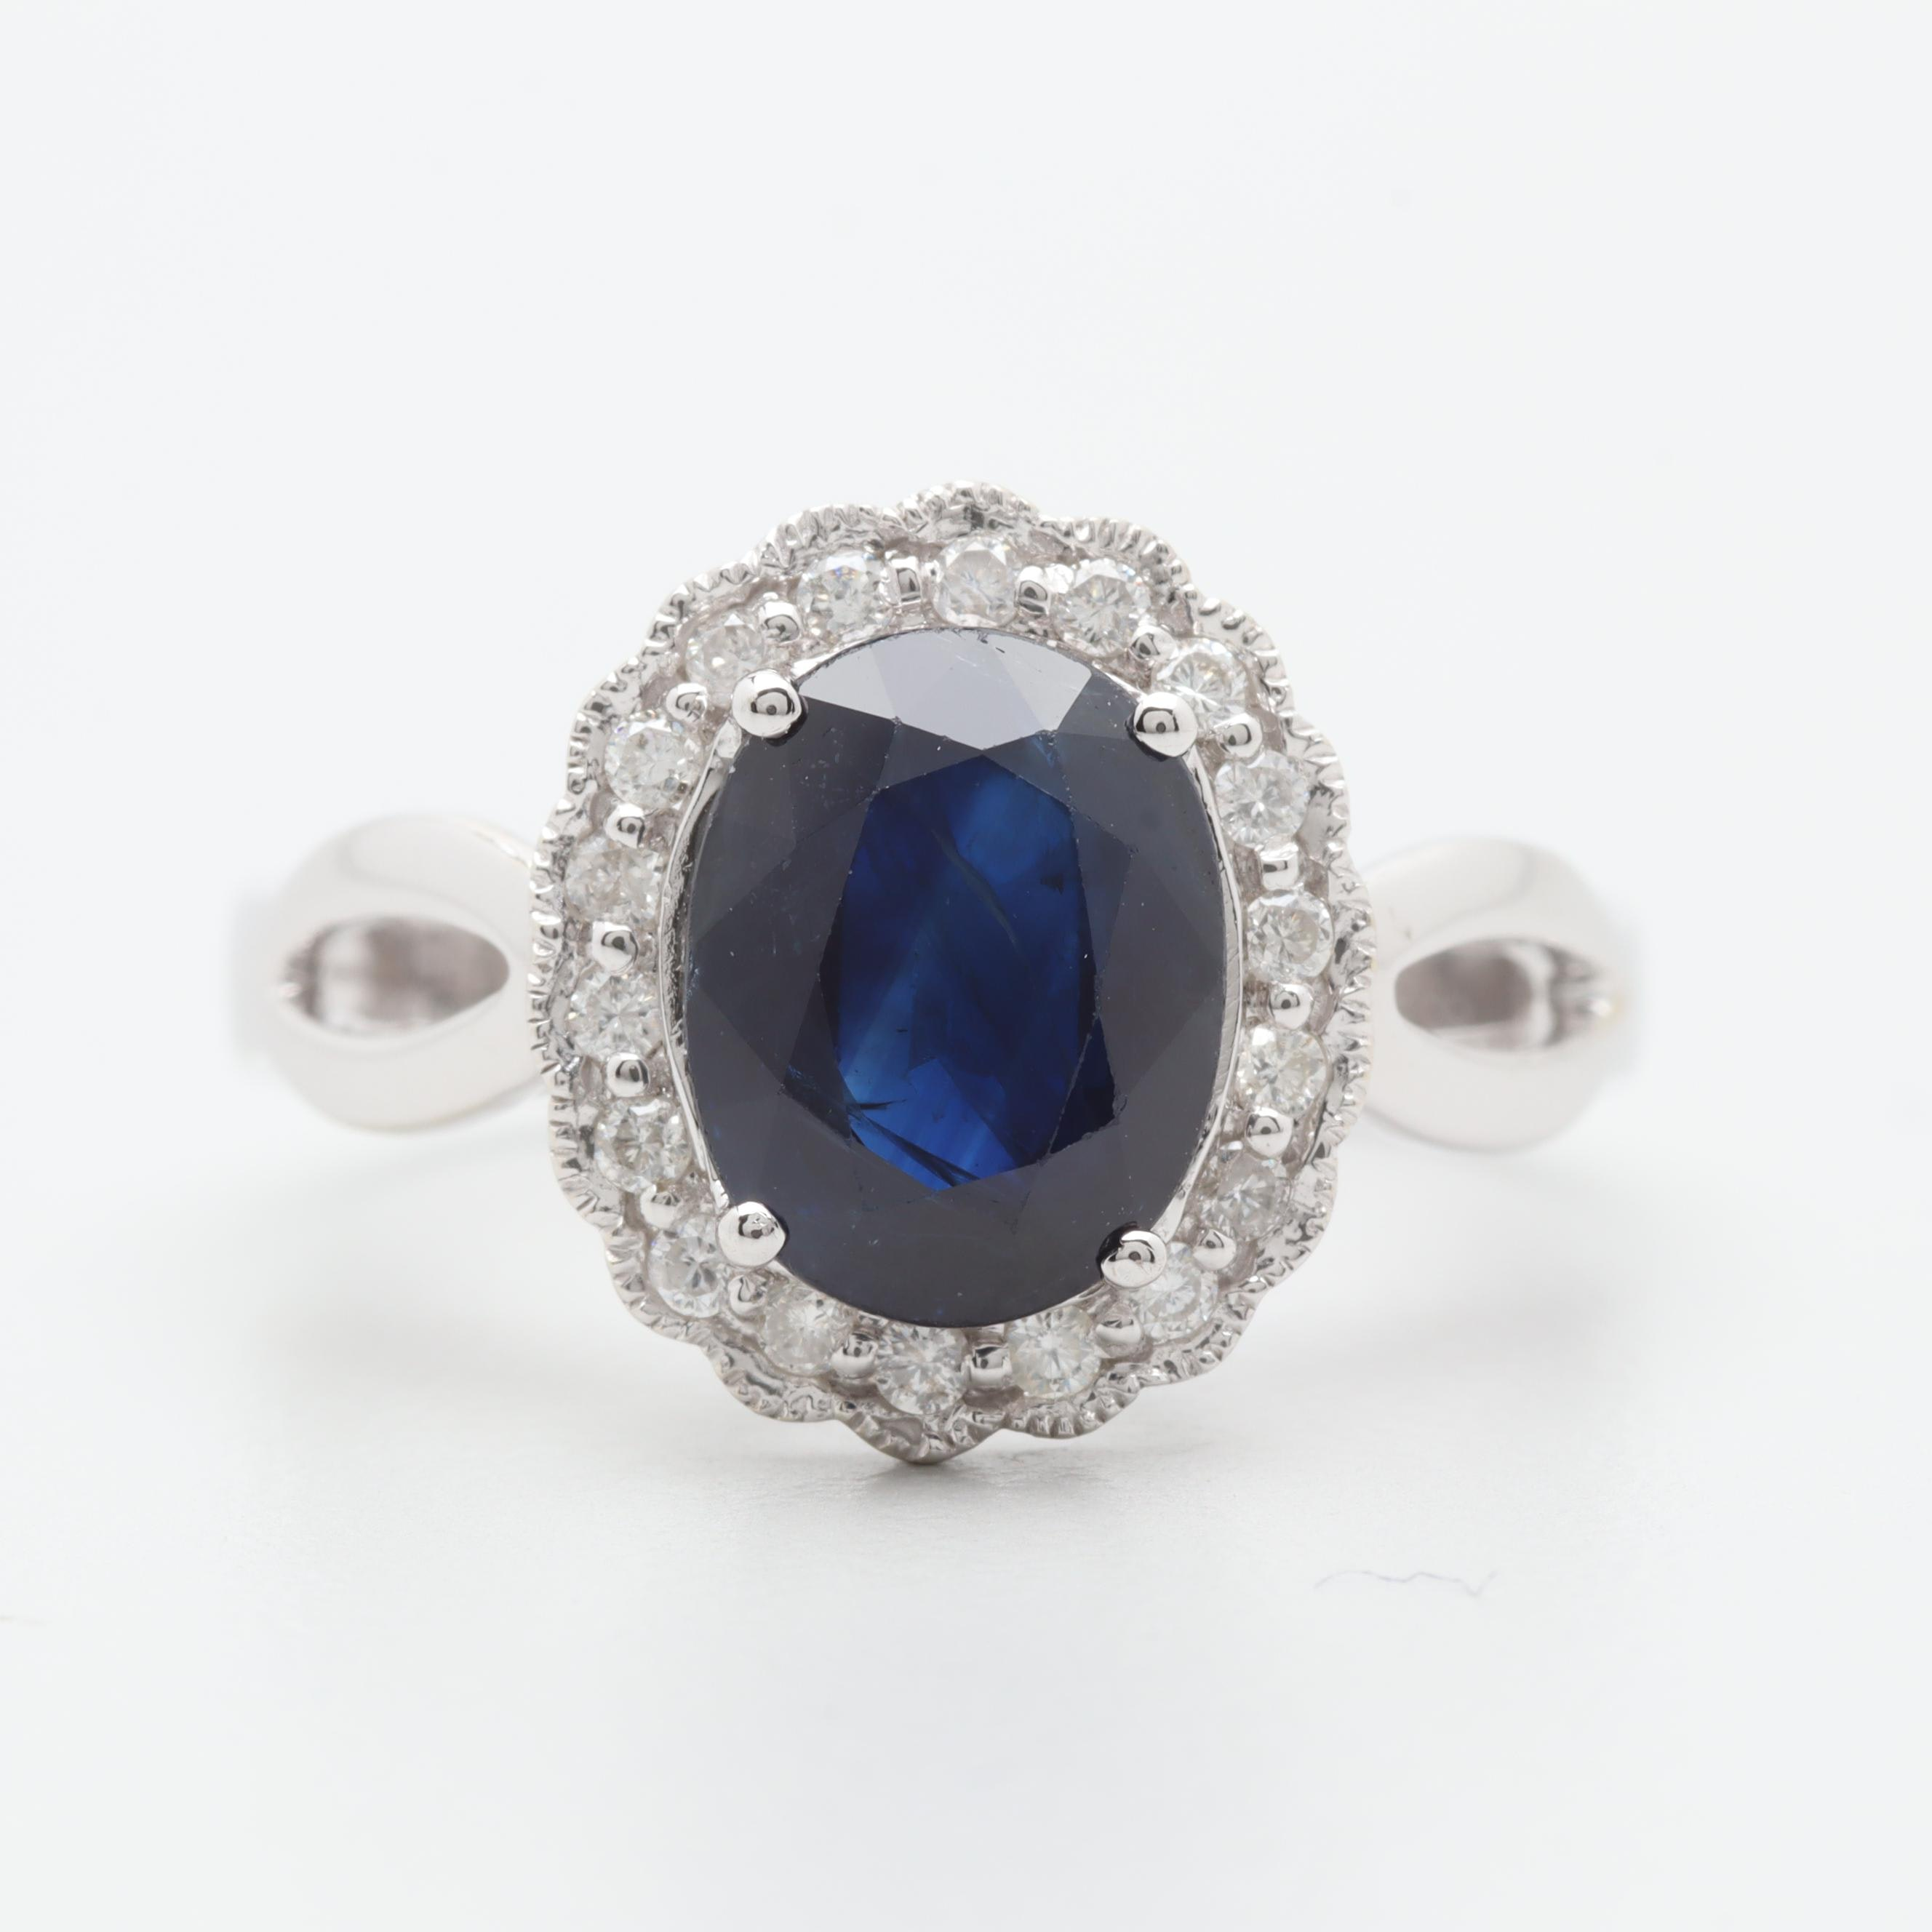 Michael Christoff 14K White Gold 1.97 CT Sapphire and Diamond Ring